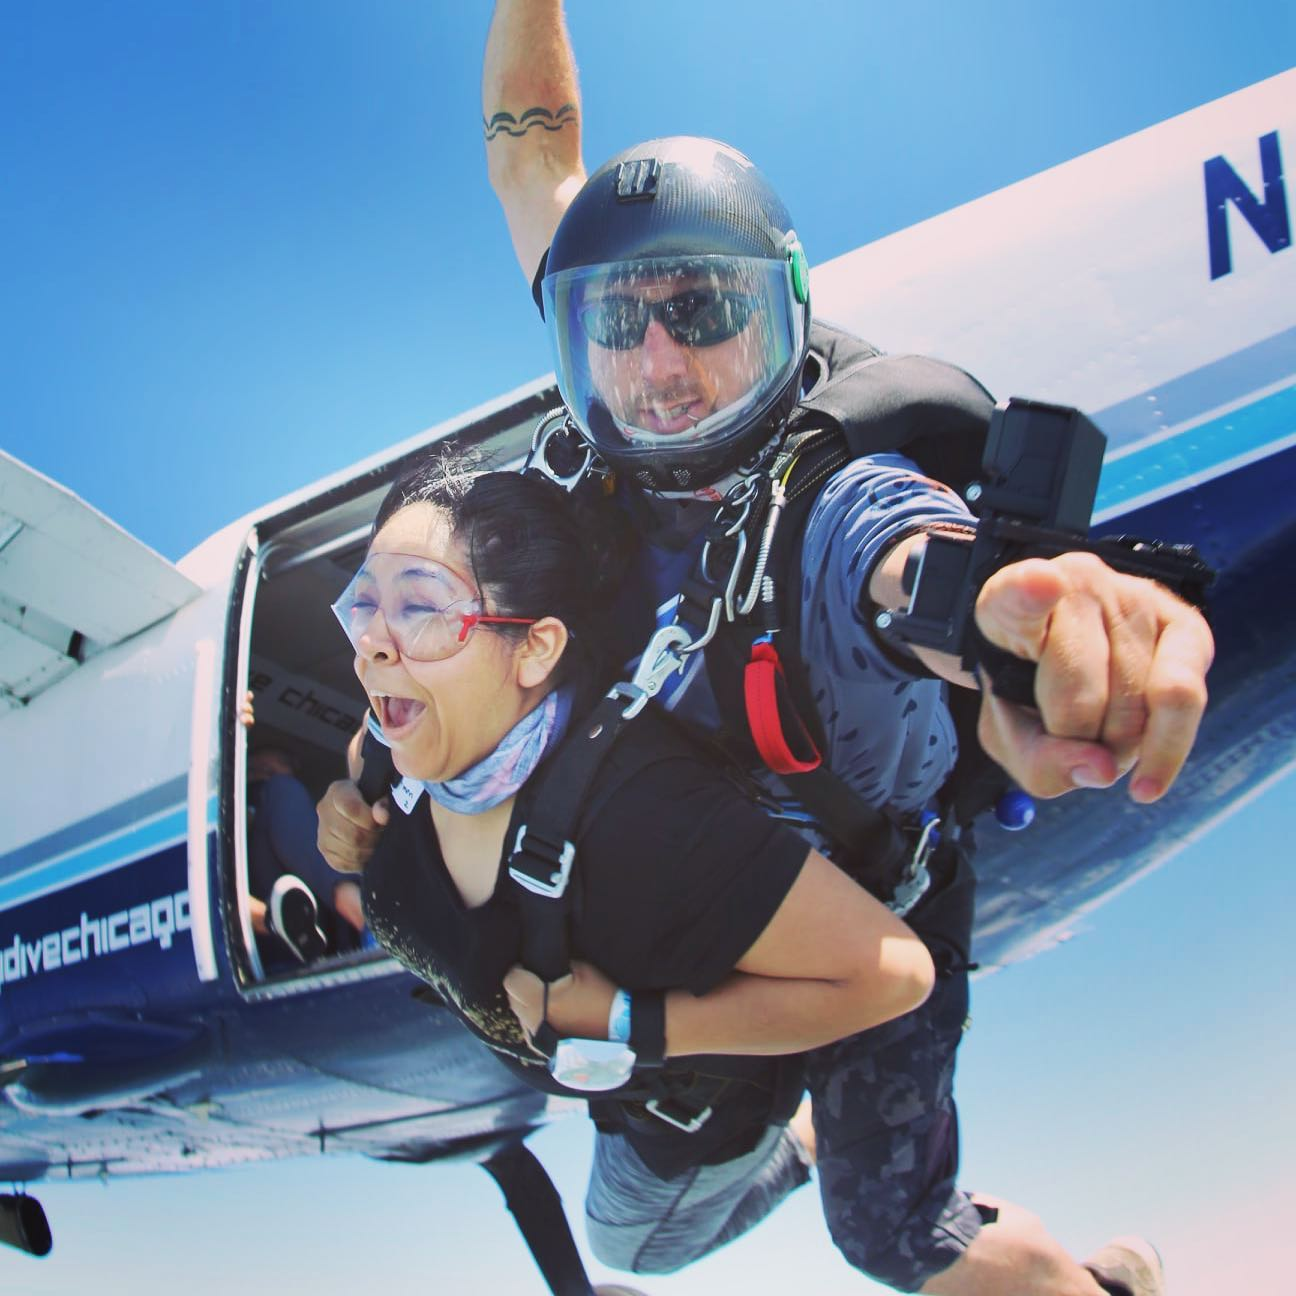 someone harnessed to an experience skydiving jumping out of a plane